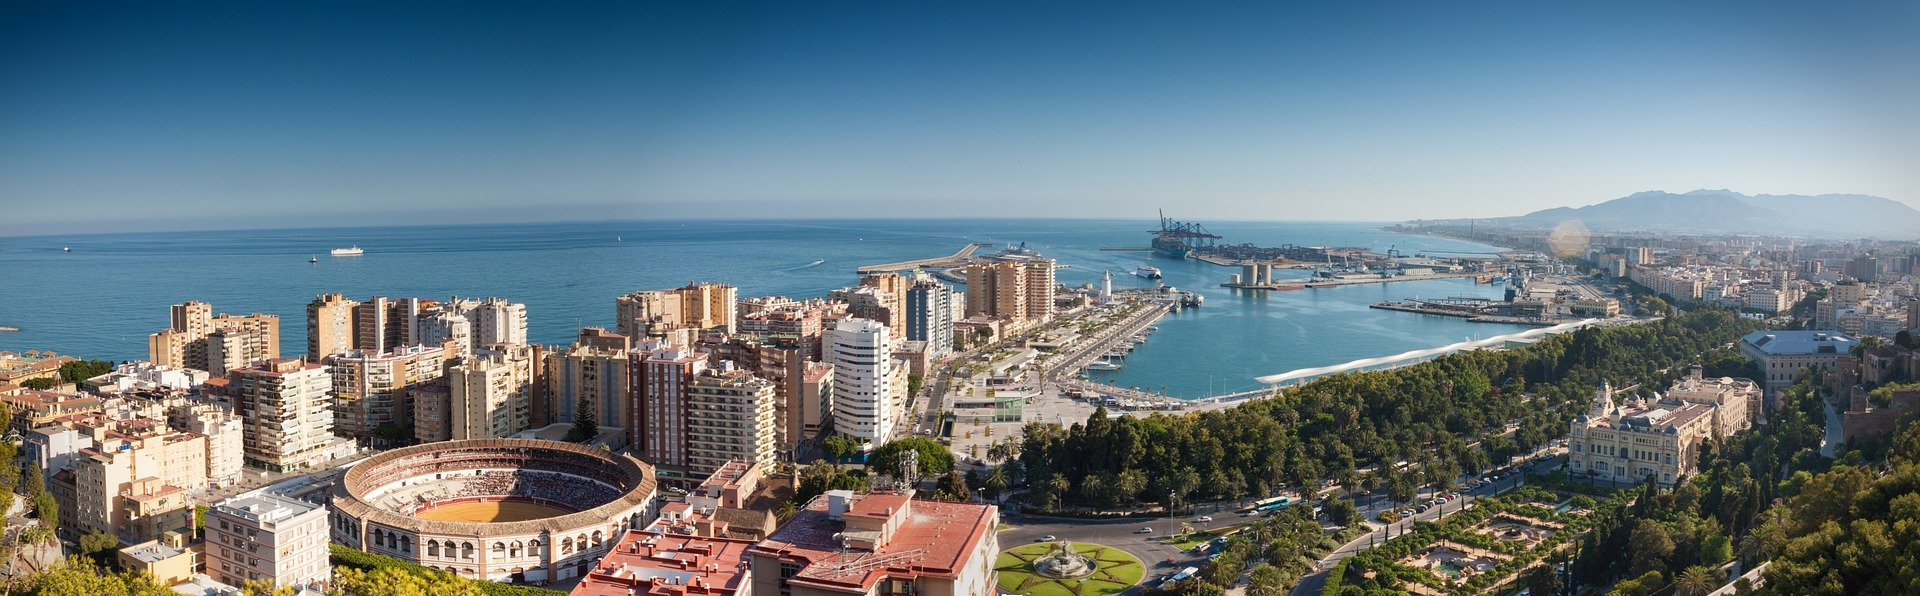 How To Get From Malaga Airport To City Center - All Possible Ways